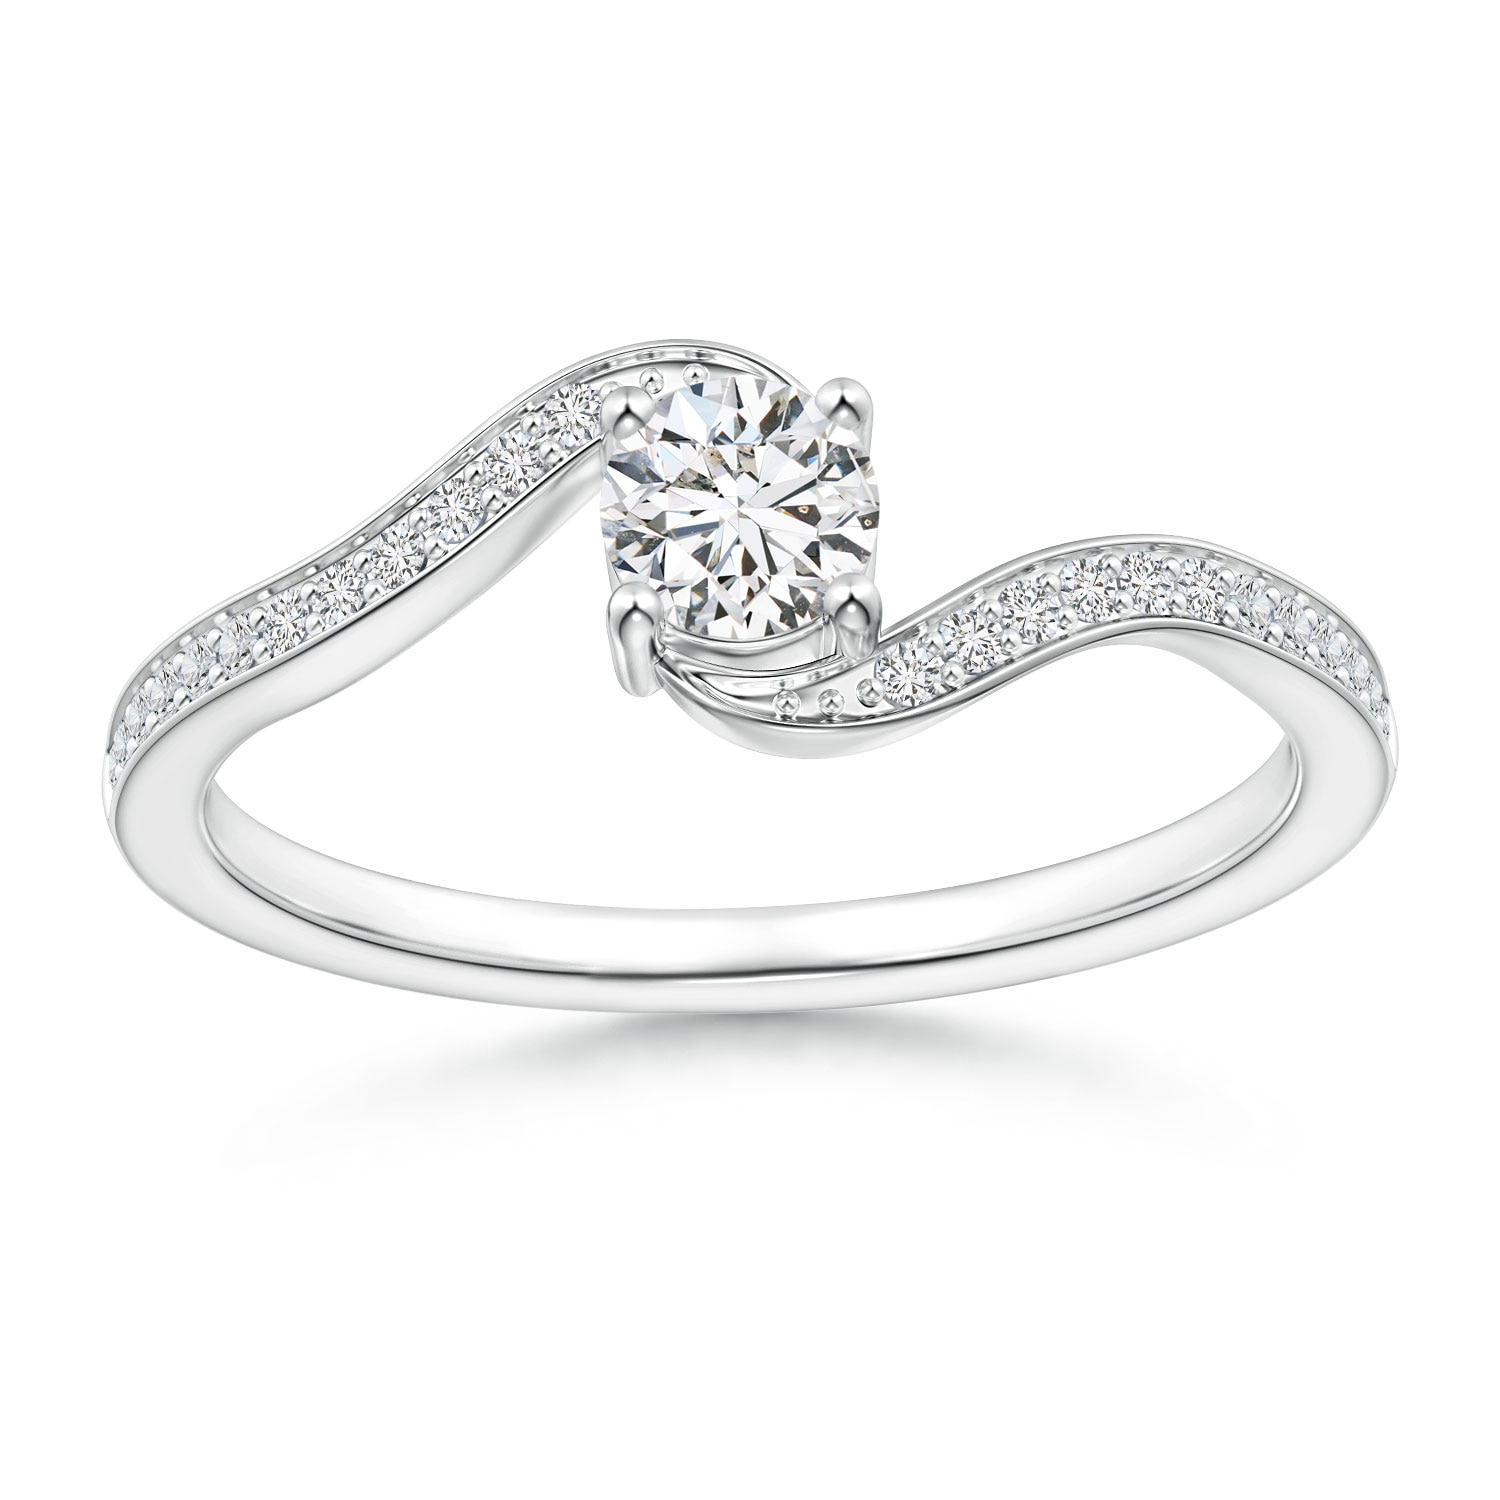 Round Diamond Solitaire Bypass Promise Ring with Diamond Accents - Angara.com